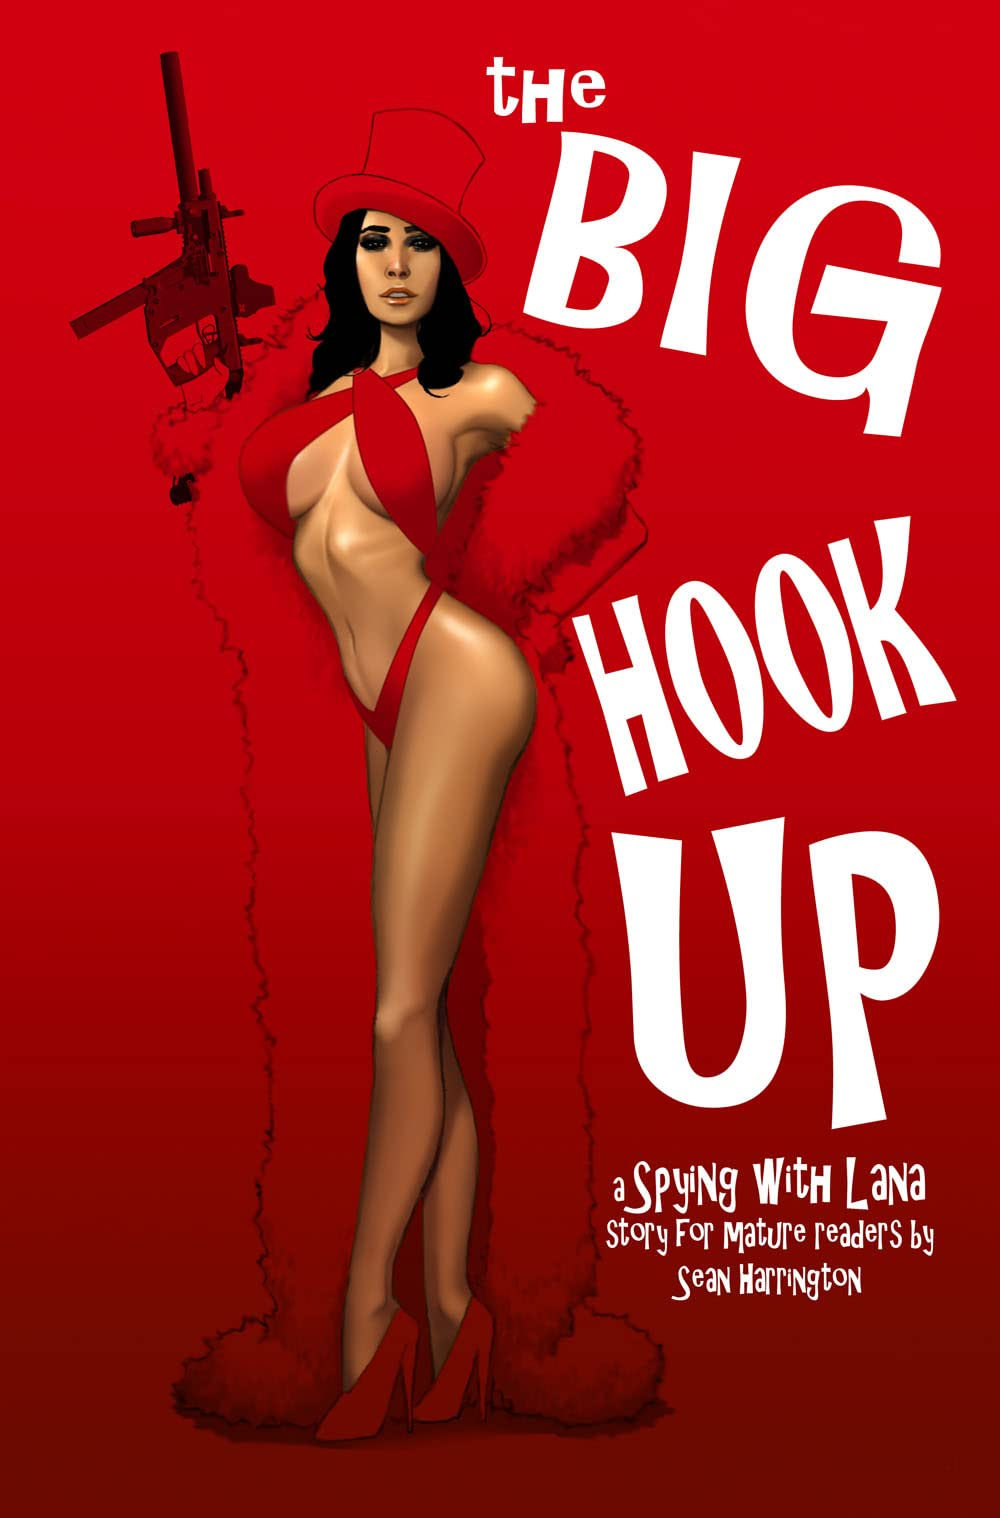 The Big Hookup